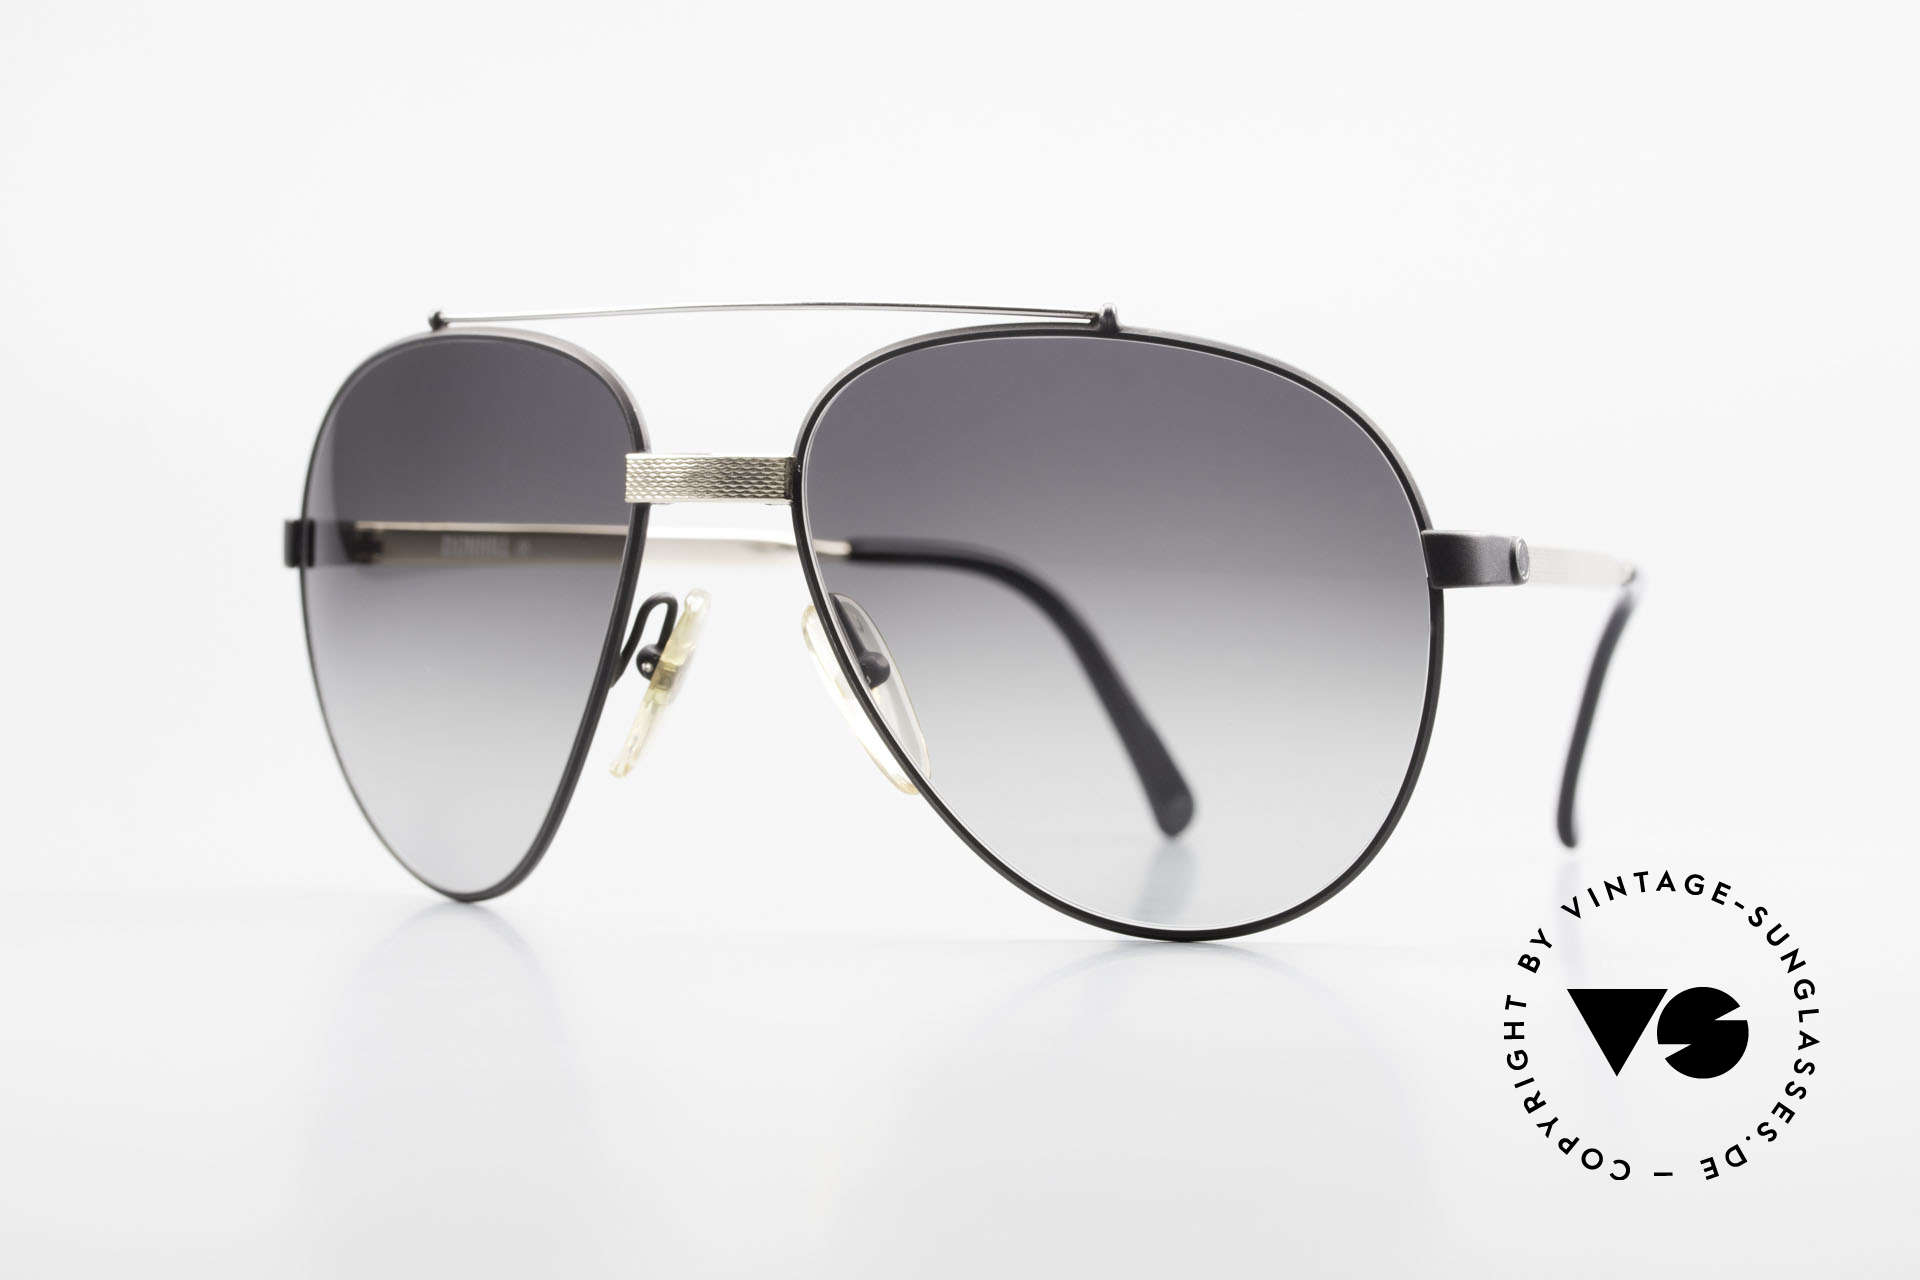 Dunhill 6023 80's Luxury Sunglasses Aviator, stylish A. Dunhill vintage sunglasses from 1983, Made for Men